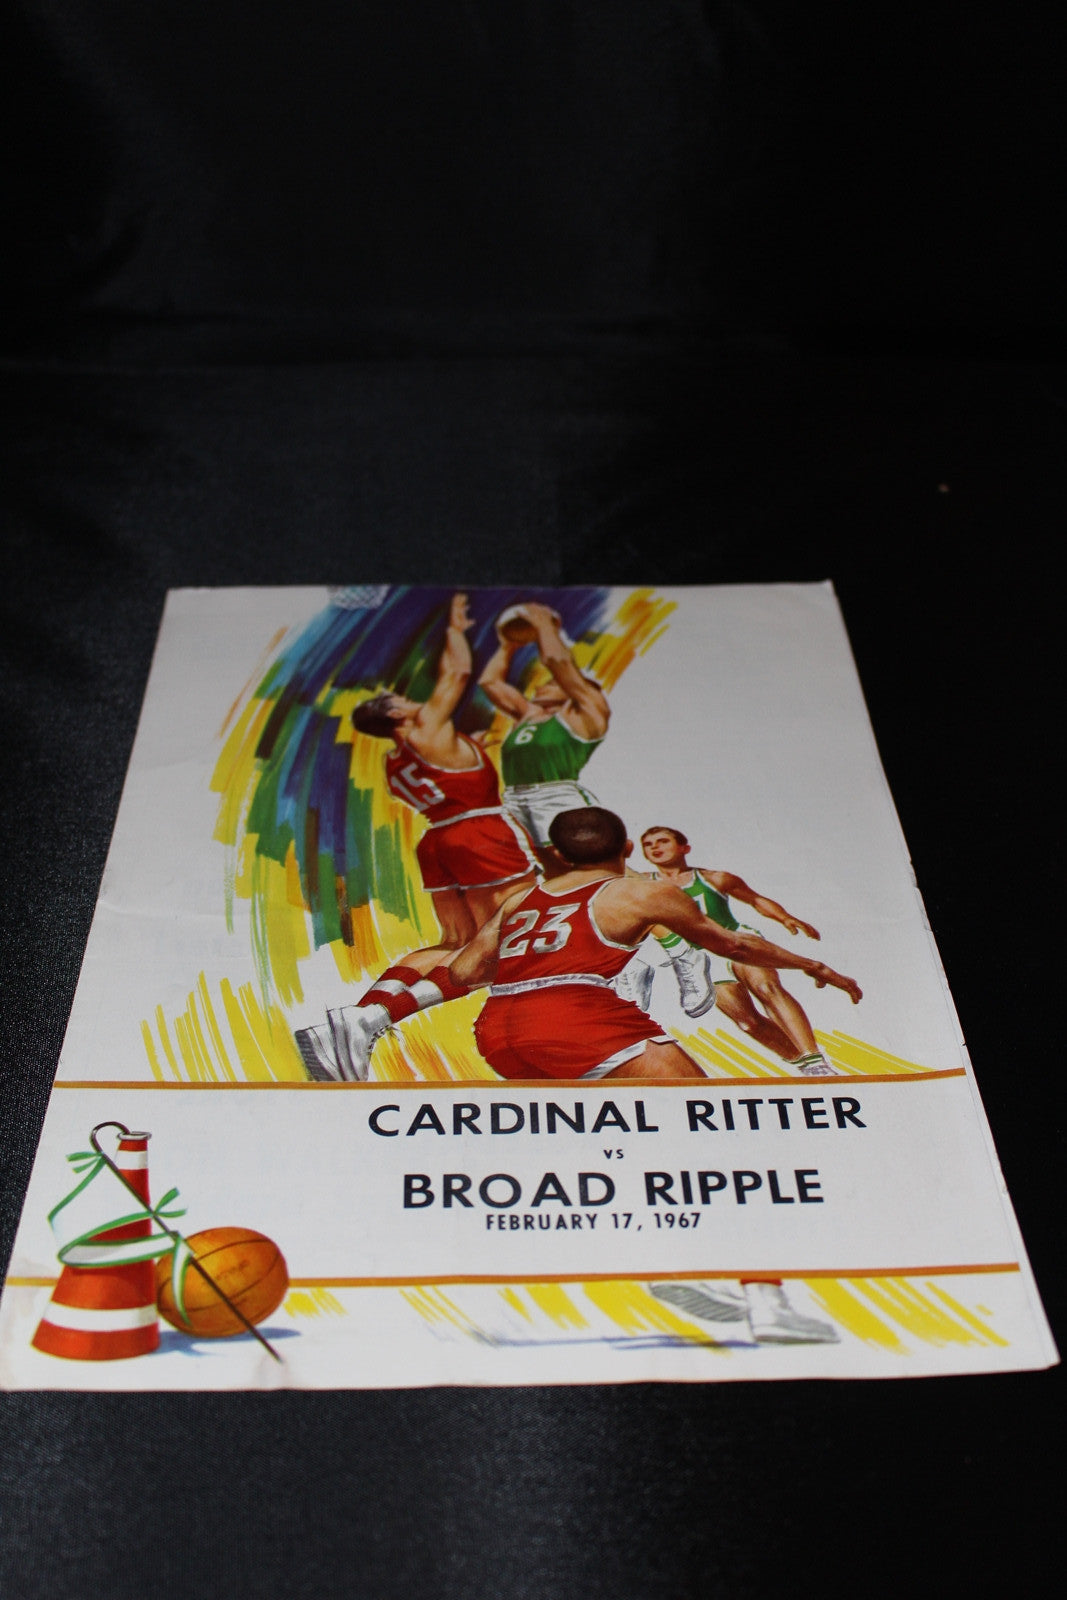 1967 Indianapolis Cardinal Ritter vs Broad Ripple Indiana H.S. Basketball Program - Vintage Indy Sports